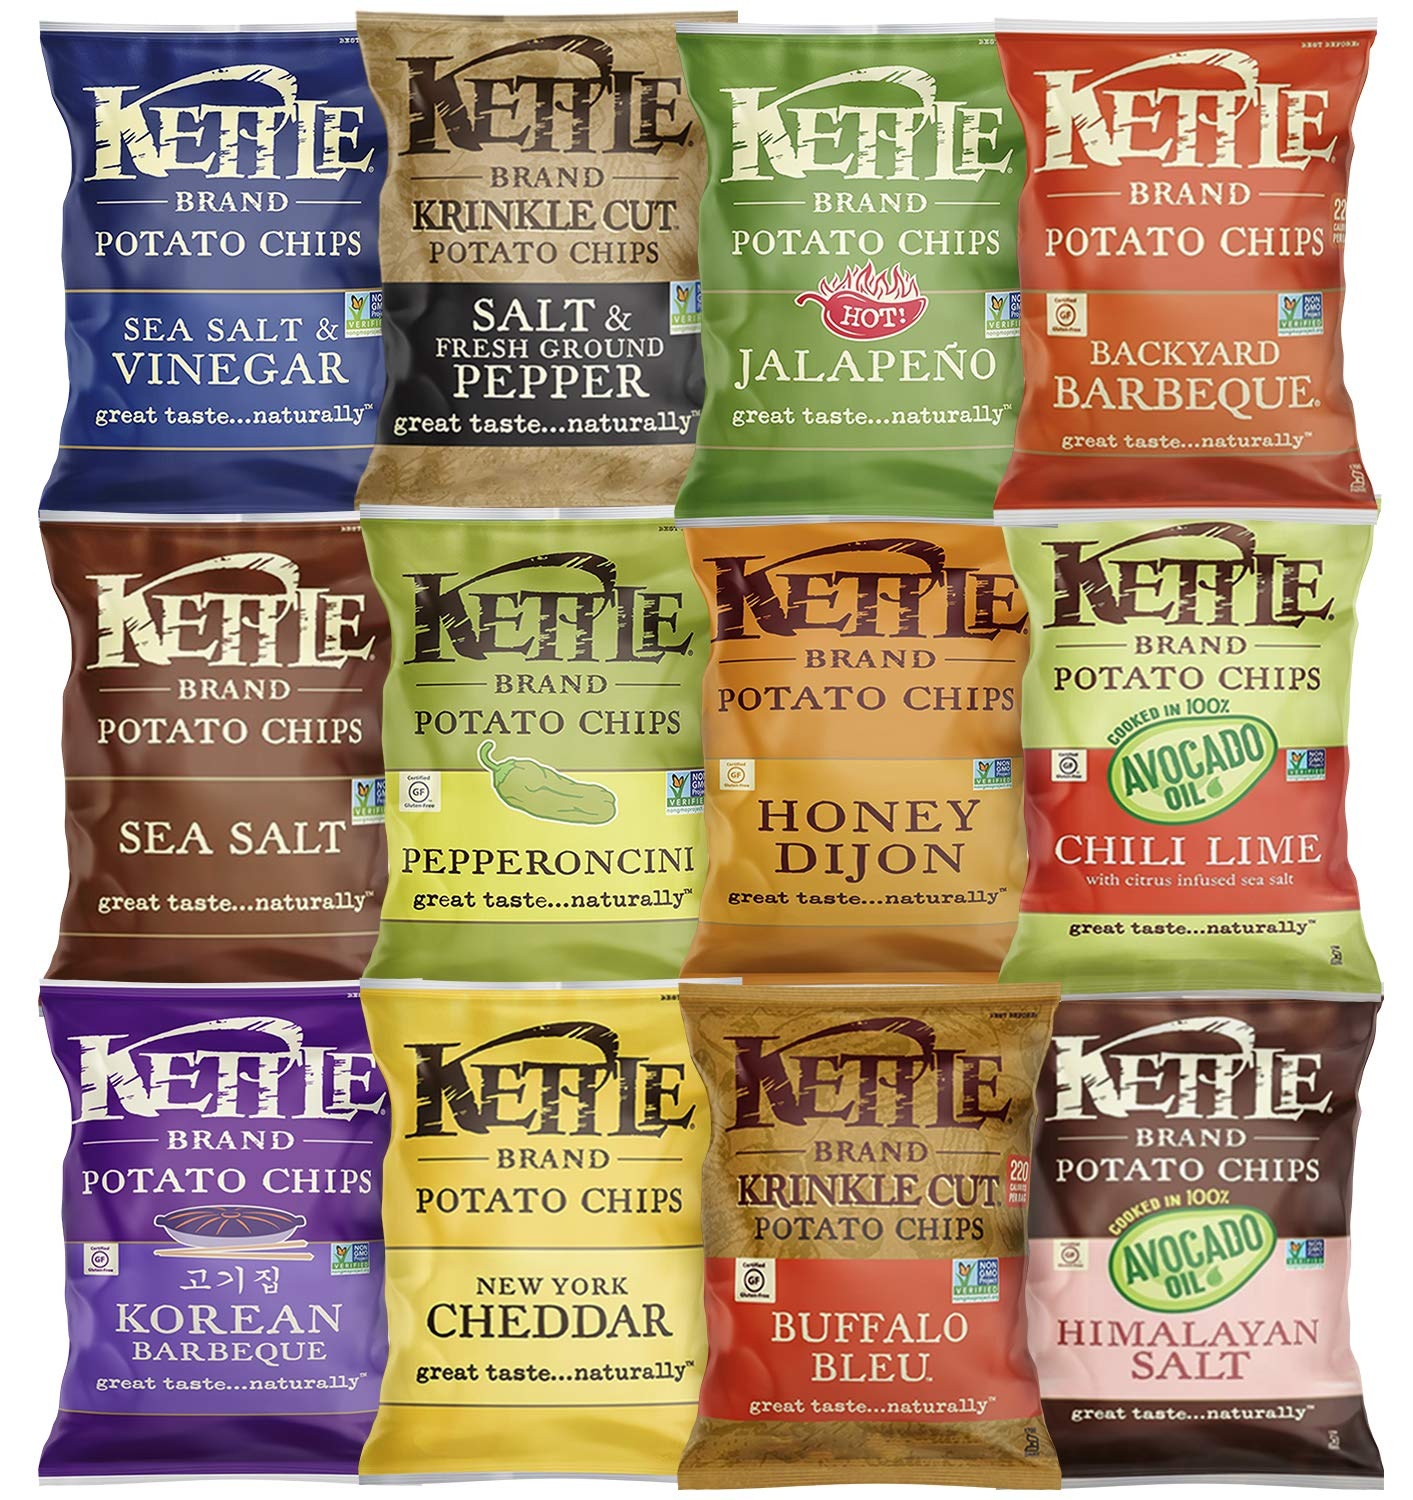 Kettle Brand Potato Chips, Individual Single Serve Bags, Many Different Flavors Sampler Variety Pack (12 Count) by Custom Varietea